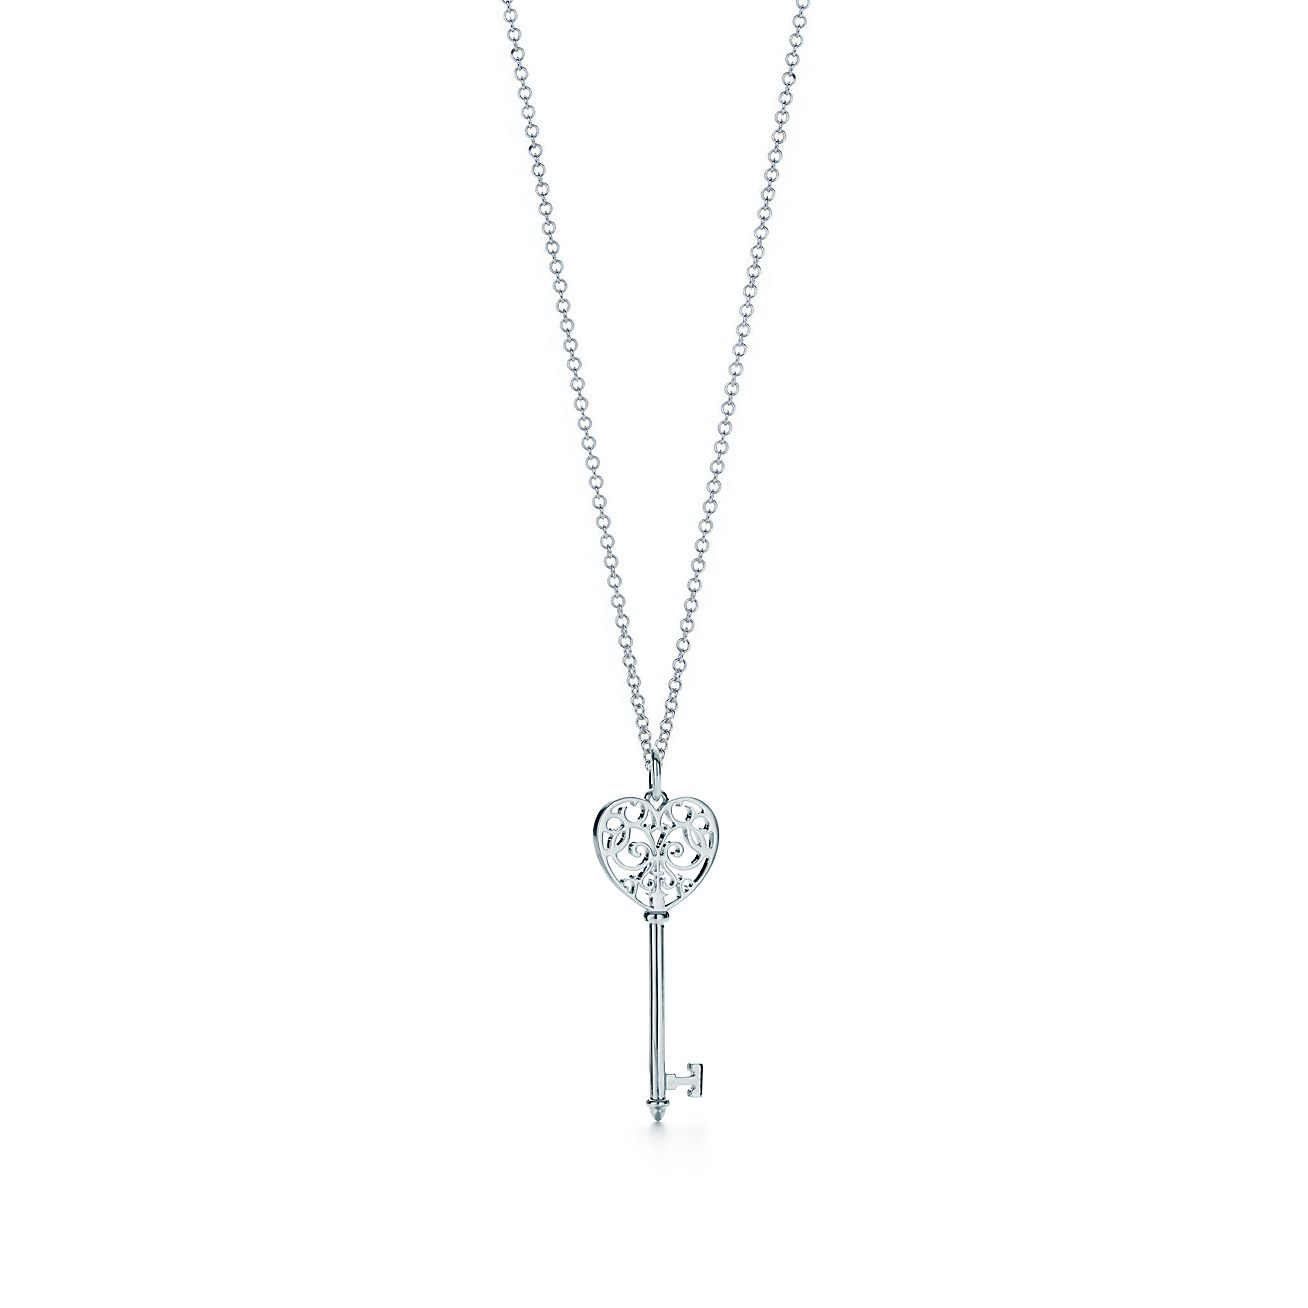 Medium tiffany enchant heart key pendant tiffany co tiffany keysenchant heart key pendant aloadofball Gallery